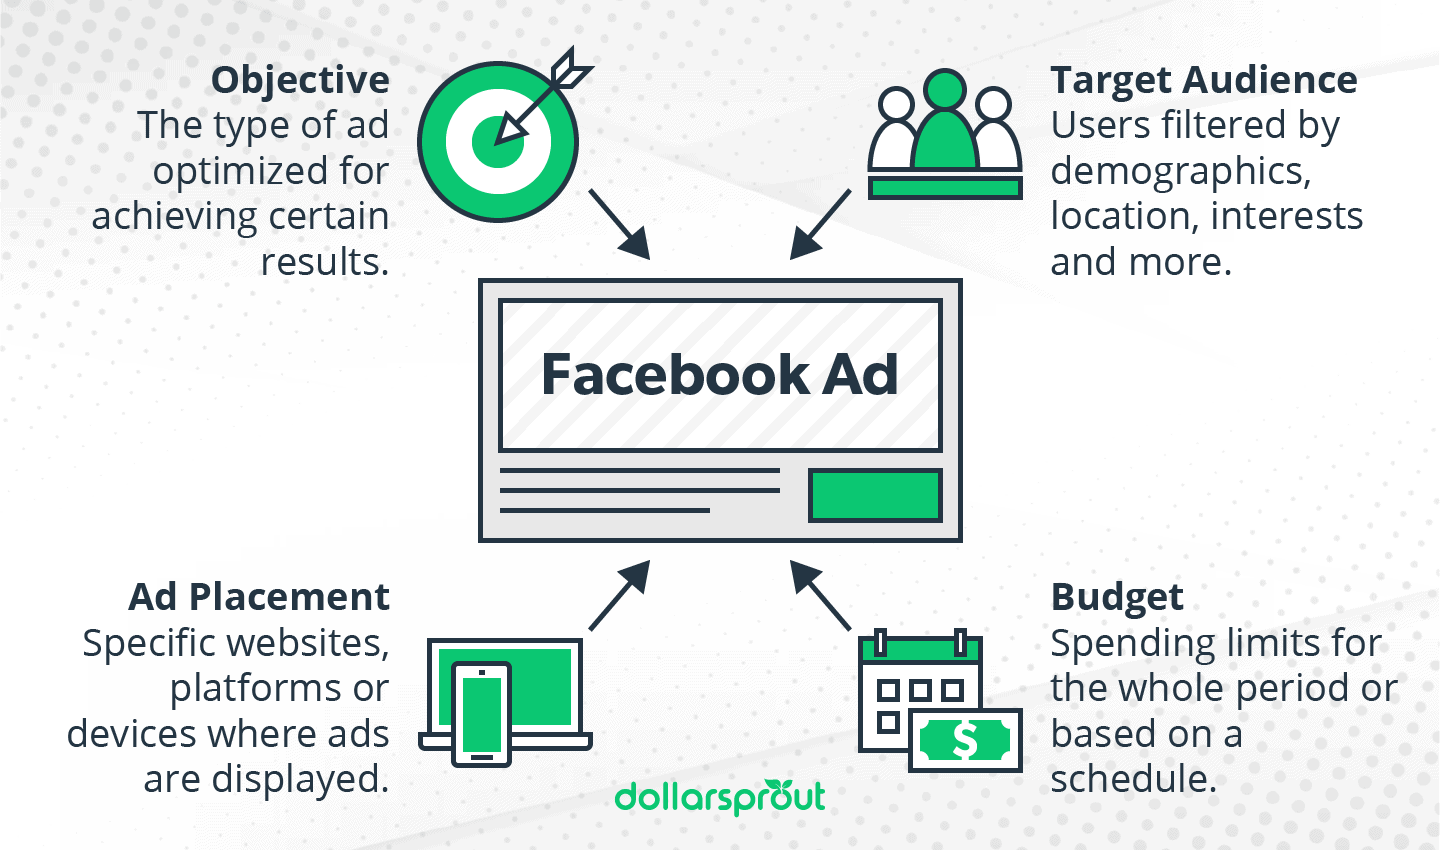 How Facebook ad is built